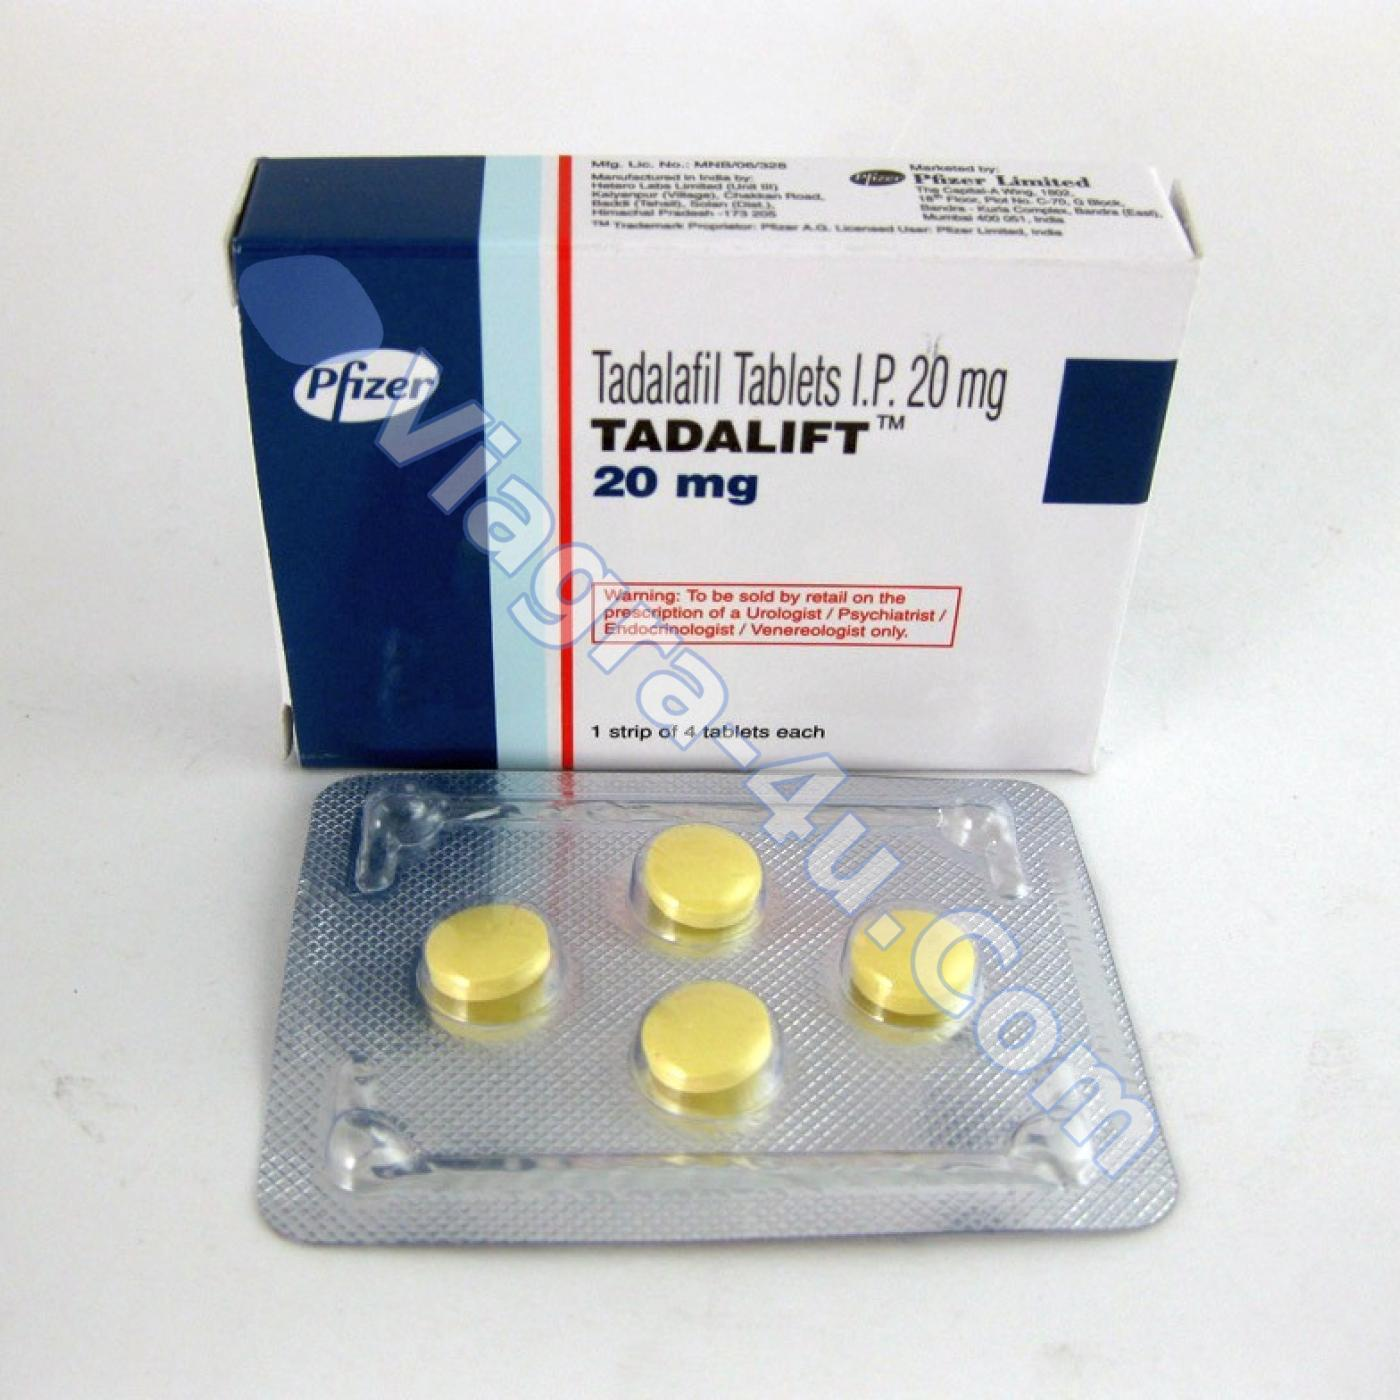 Cialis 20mg dosage instructions